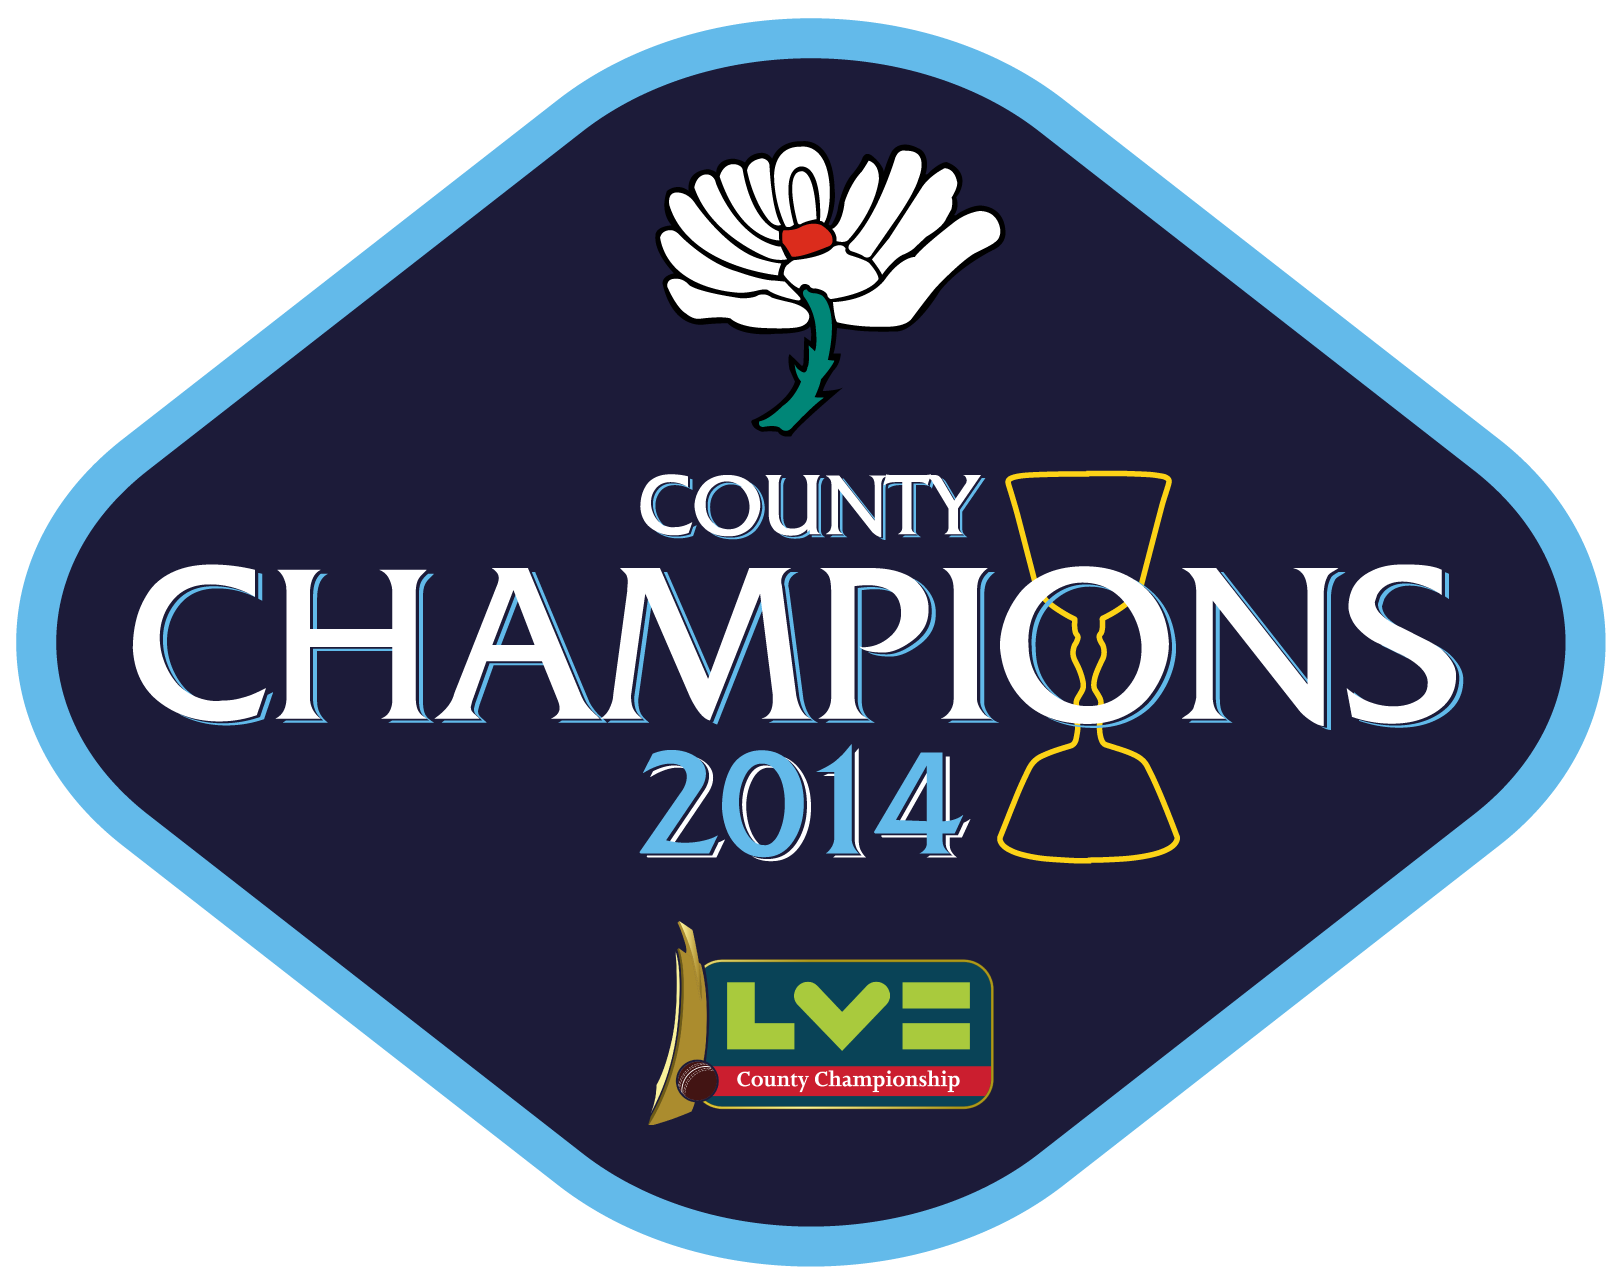 Yorkshire CCC 2014 Champions Pin Badge